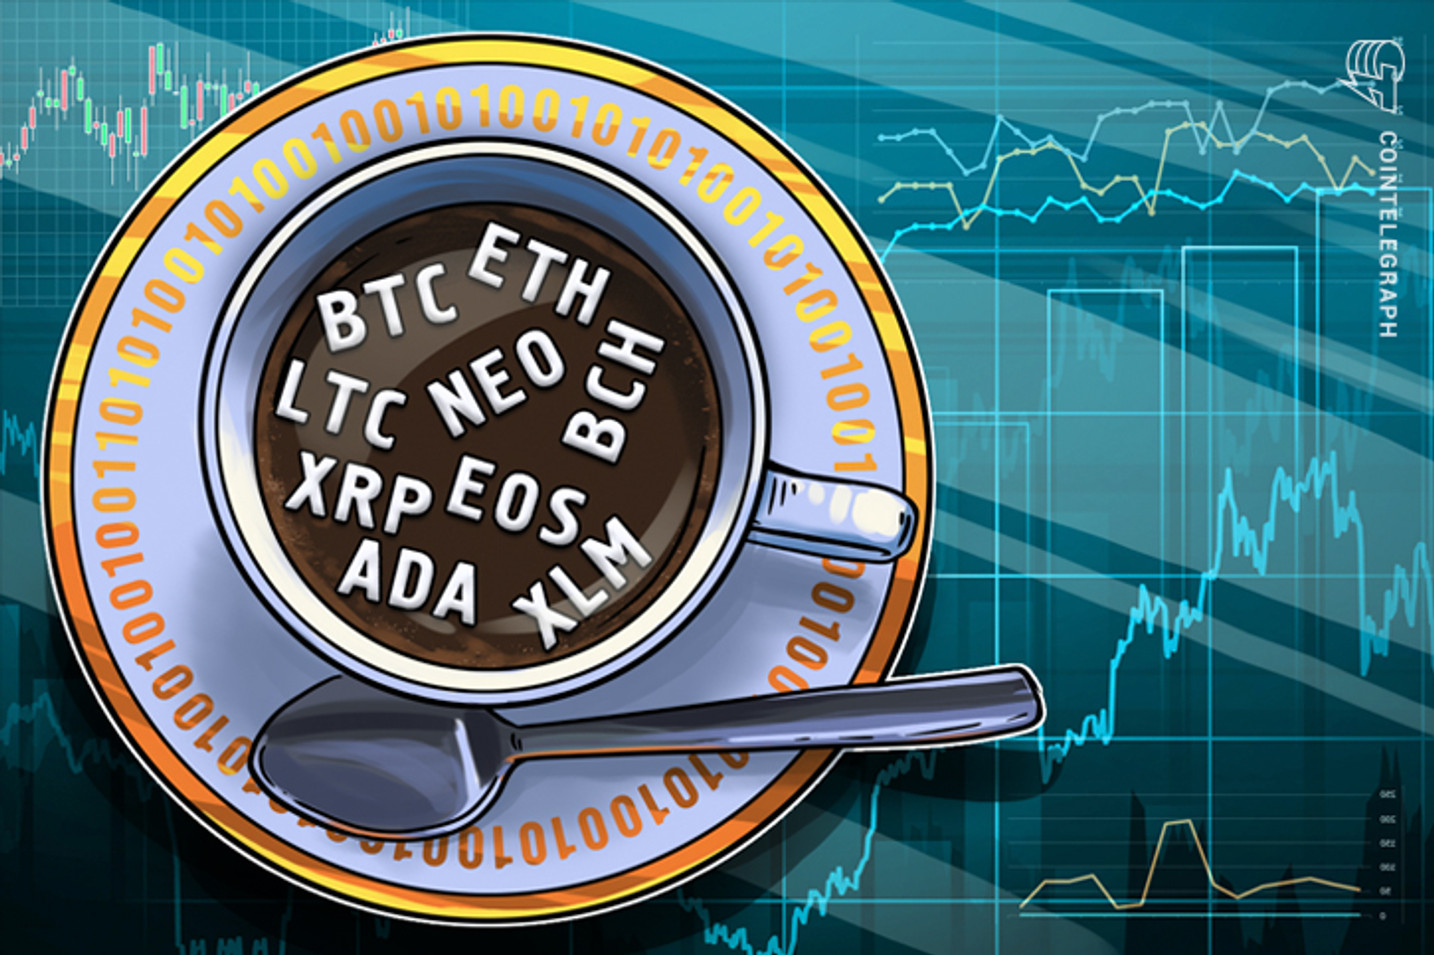 Bitcoin, Ethereum, Bitcoin Cash, Ripple, Stellar, Litecoin, Cardano, NEO, EOS: Price Analysis, April 25